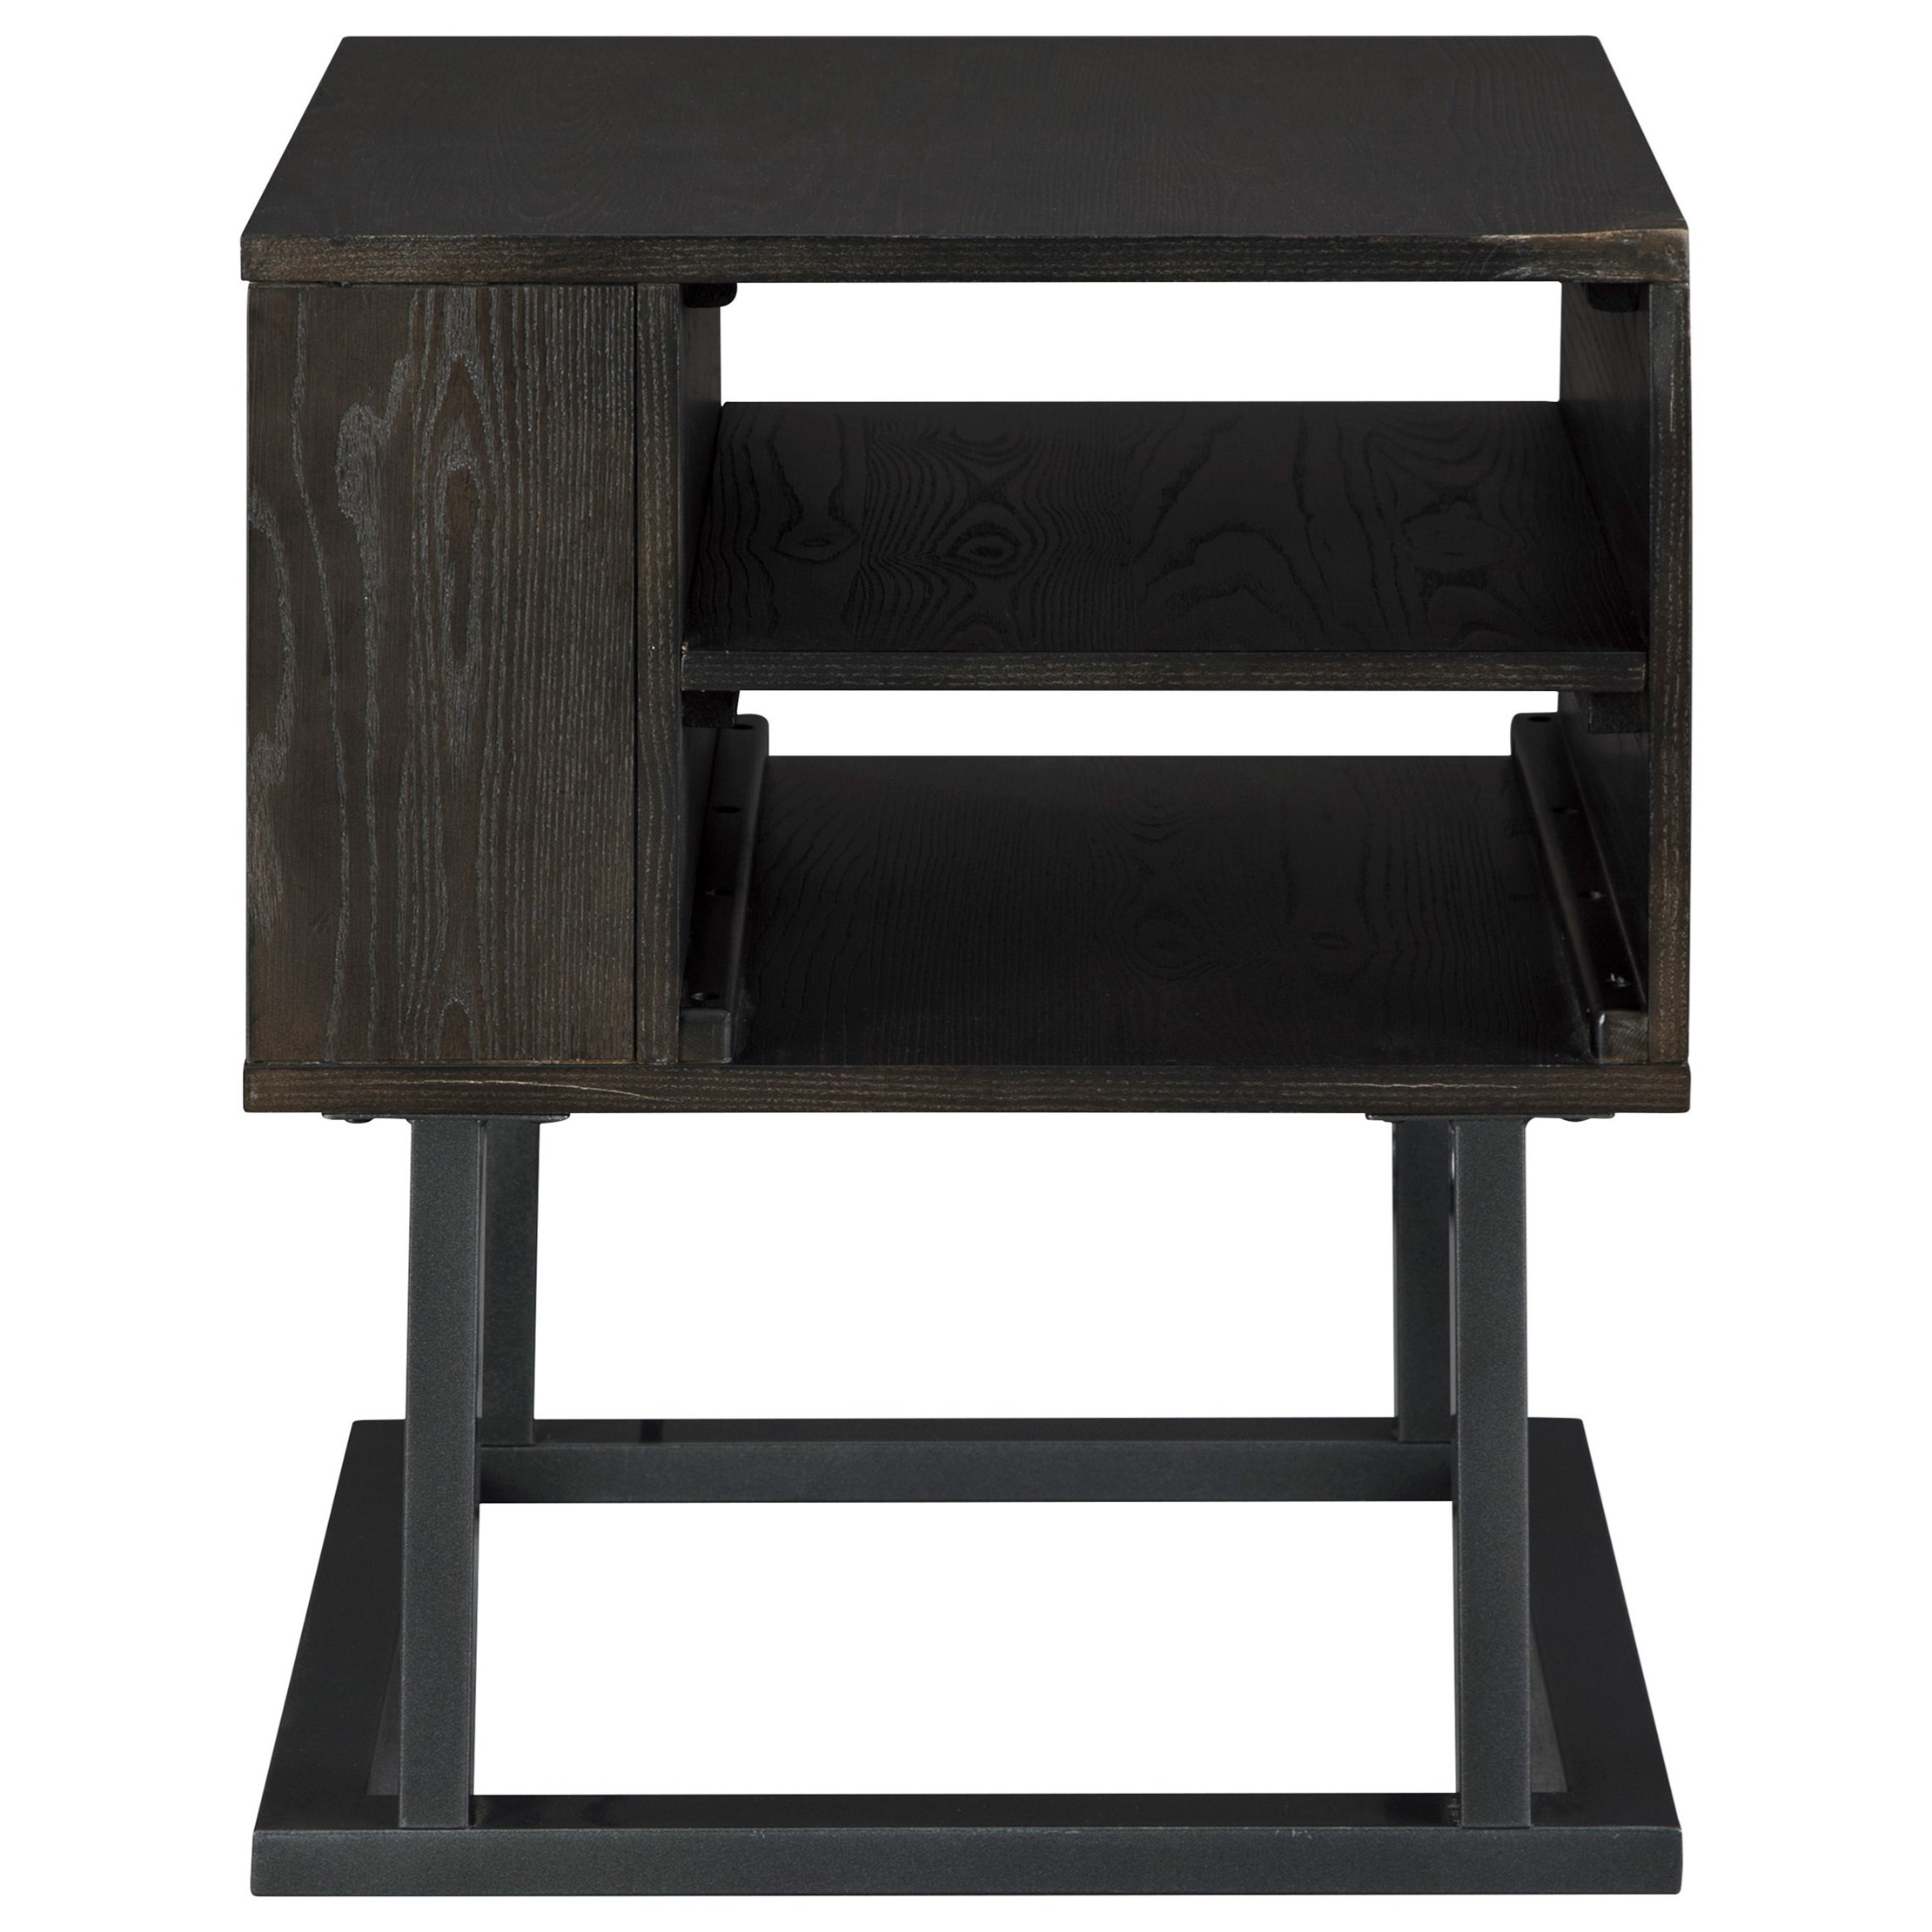 Airdon Square End Table by Signature Design by Ashley at Simply Home by Lindy's